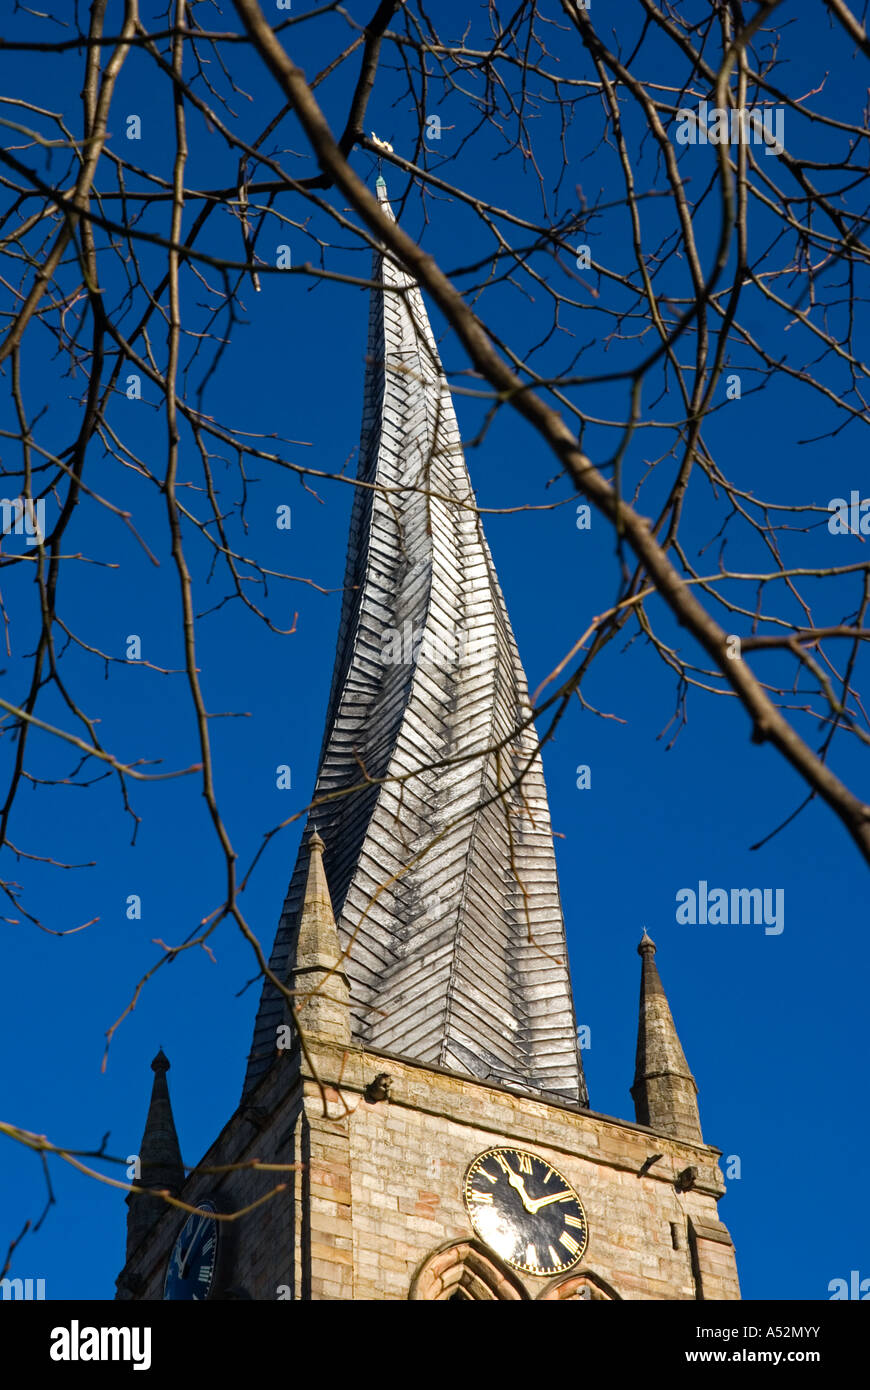 Warped Steeple, Chesterfield - Stock Image